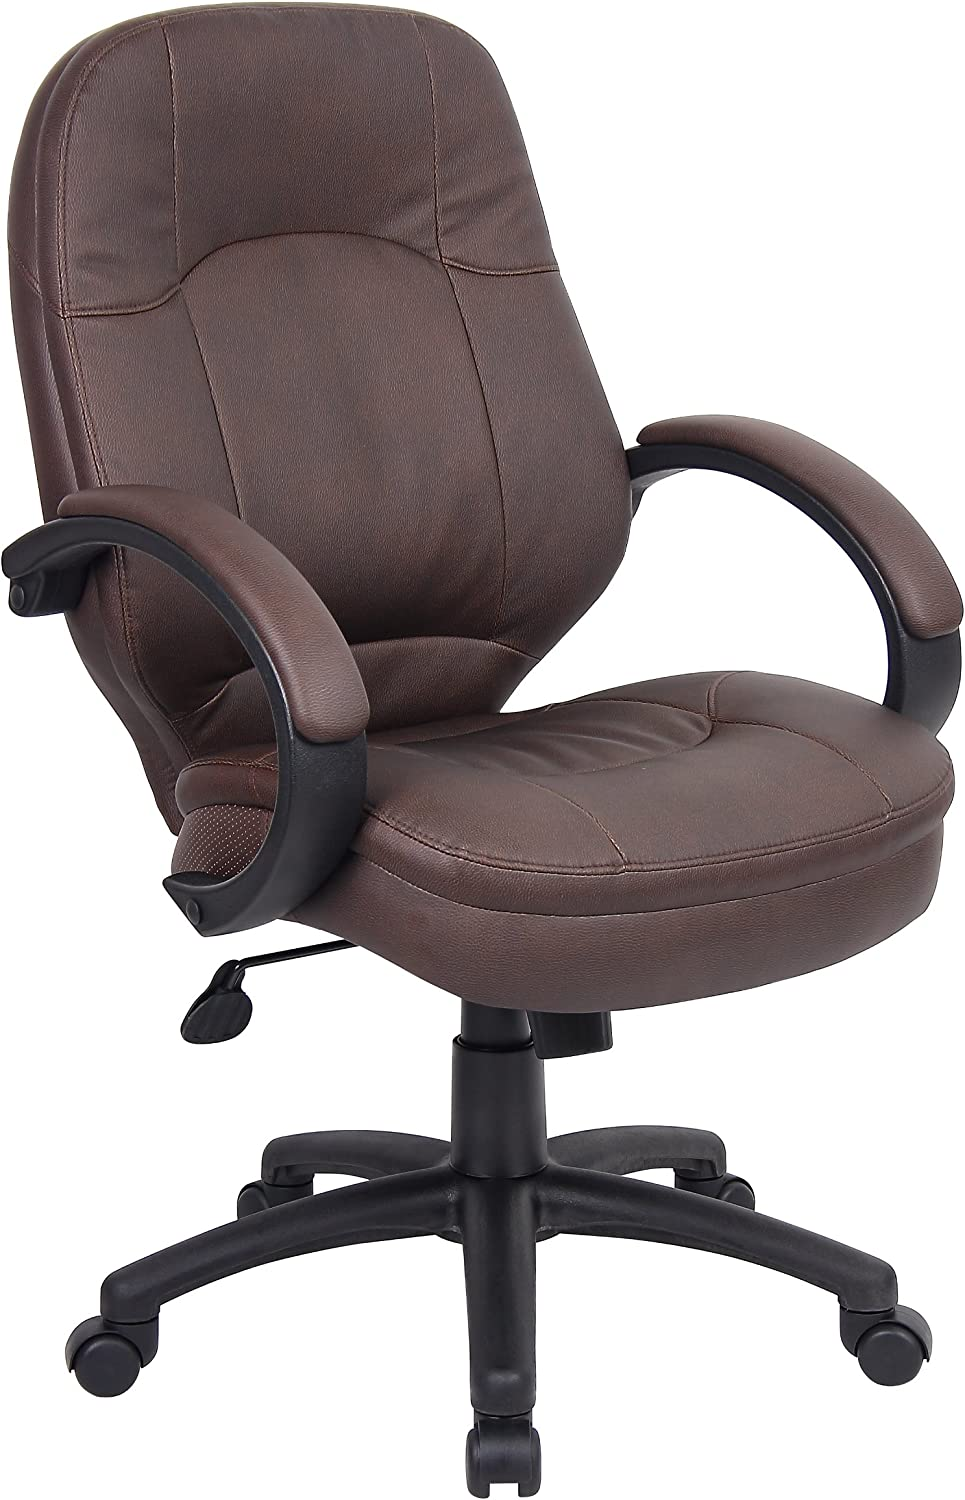 Boss Office Products B726-BB LeatherPlus Executive Chair in Bomber Brown